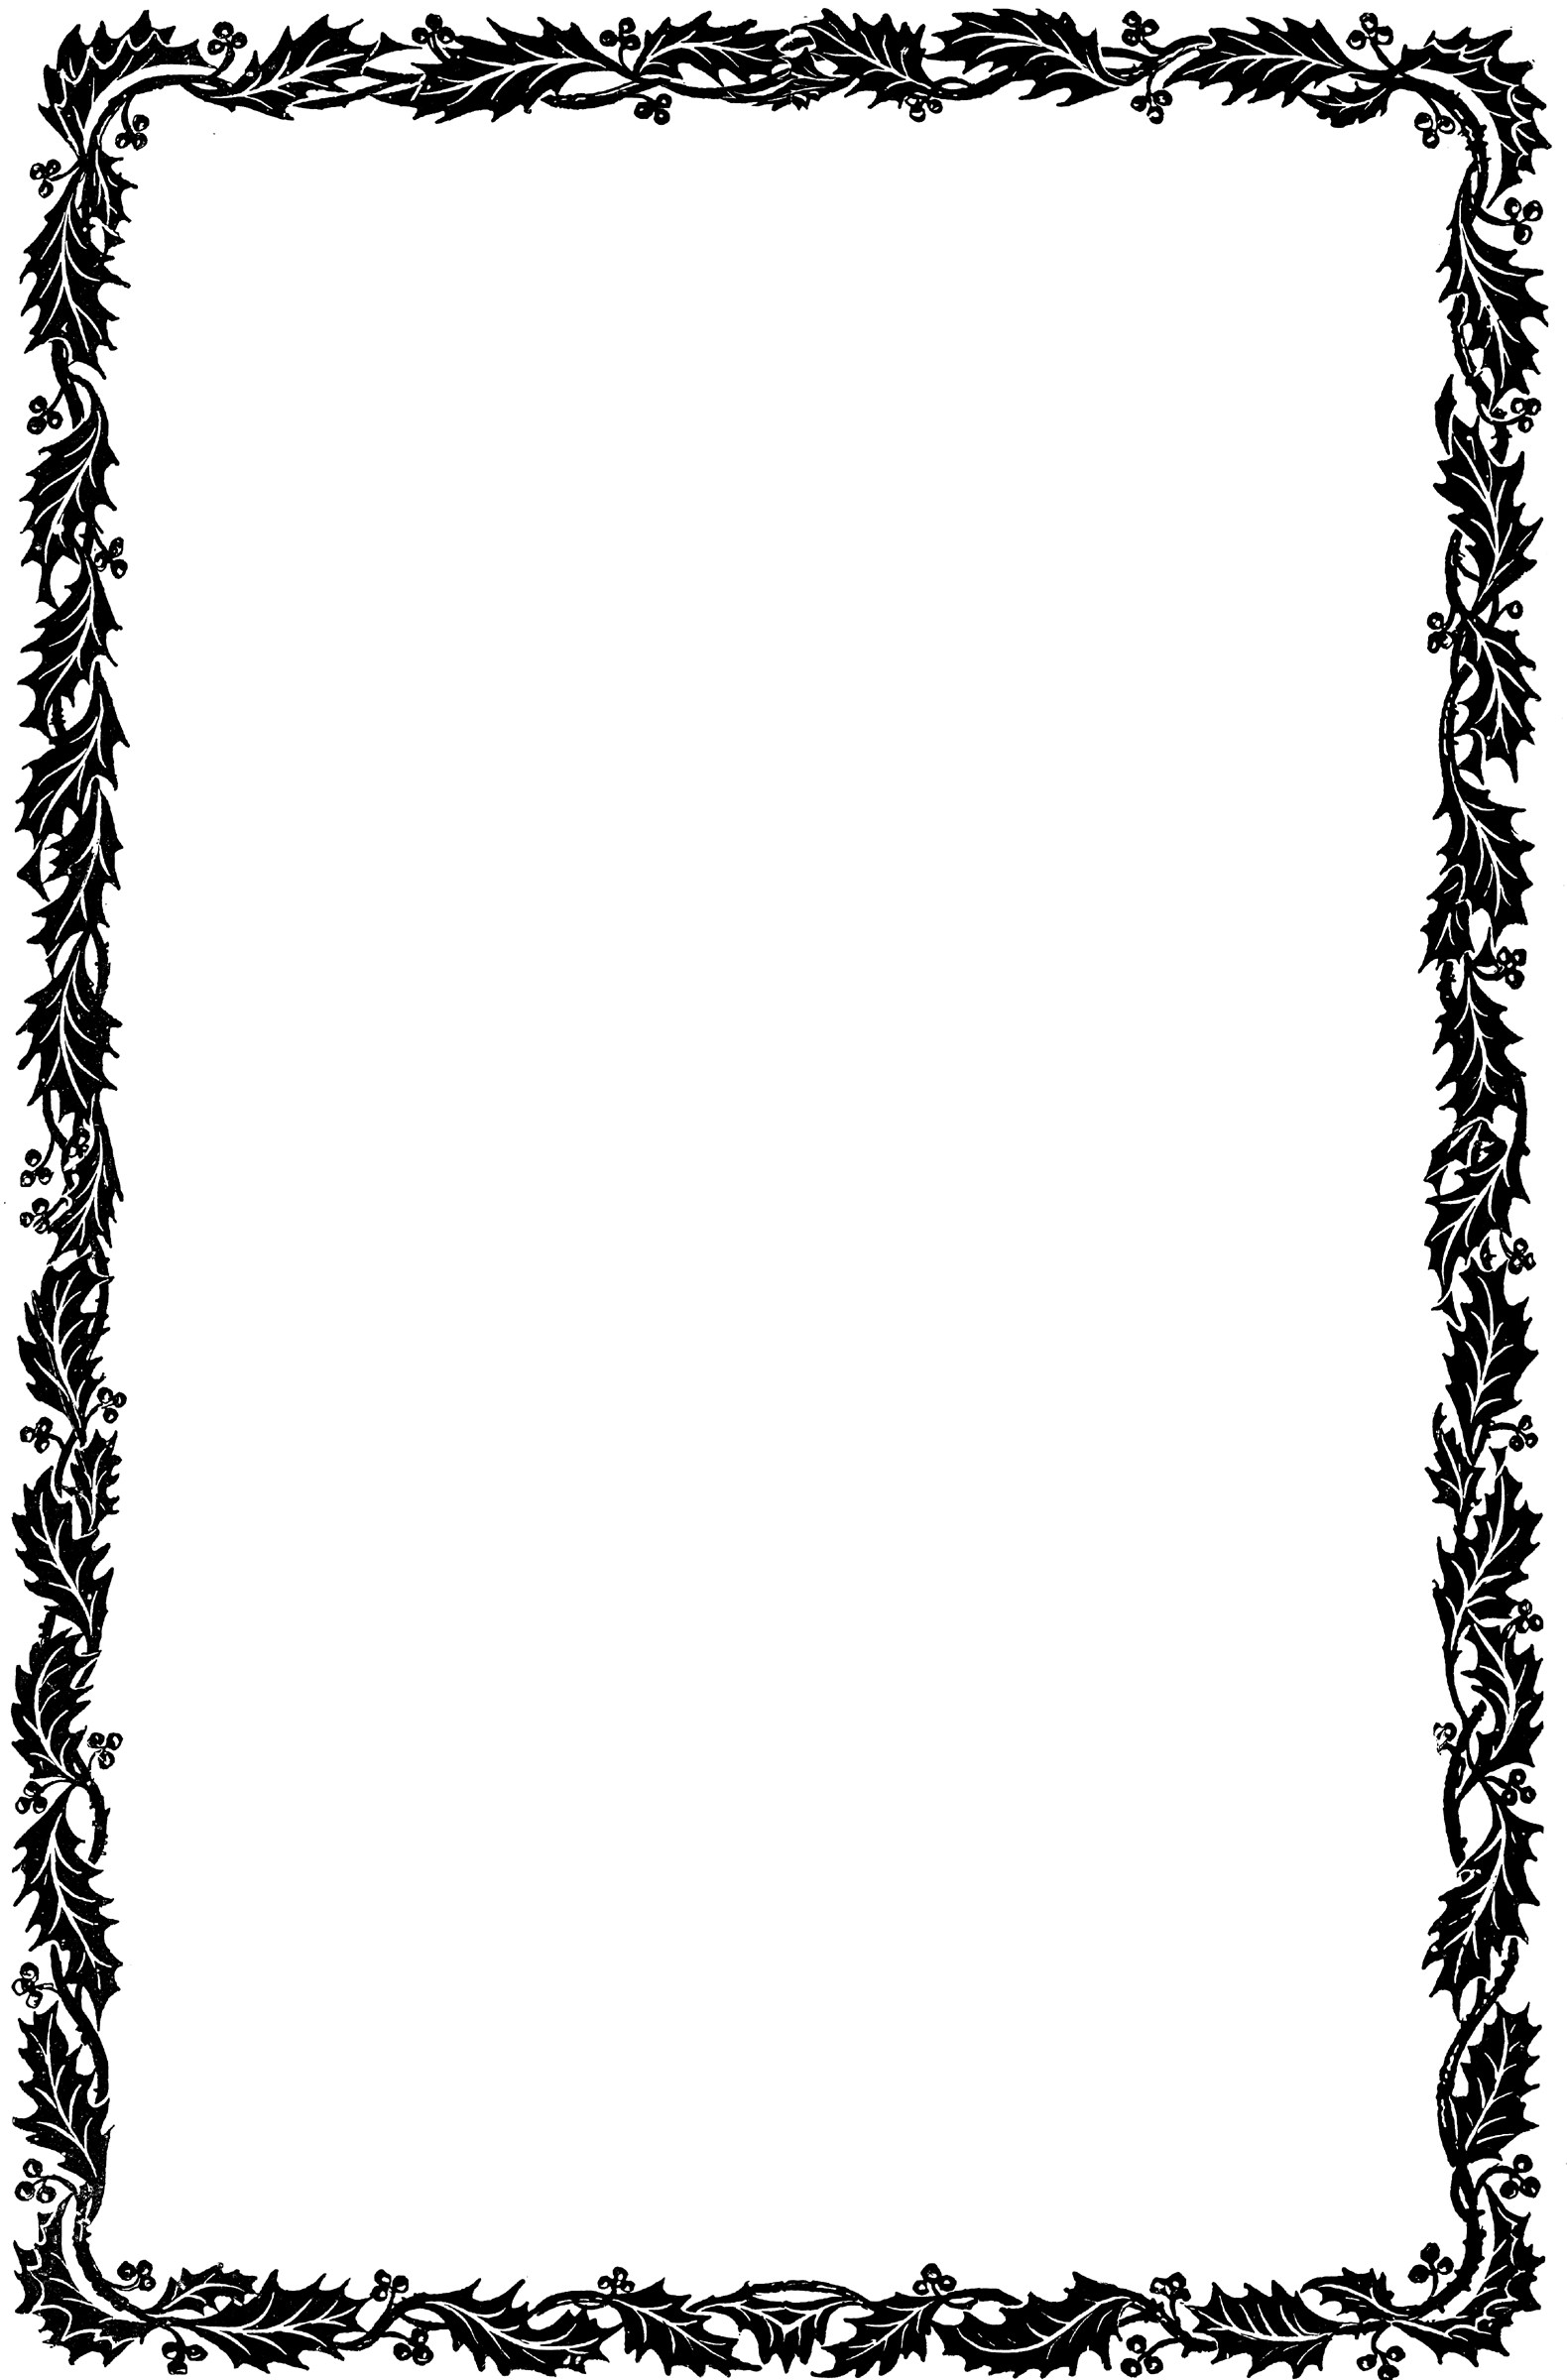 And Transparent Borders Frames Ribbons And